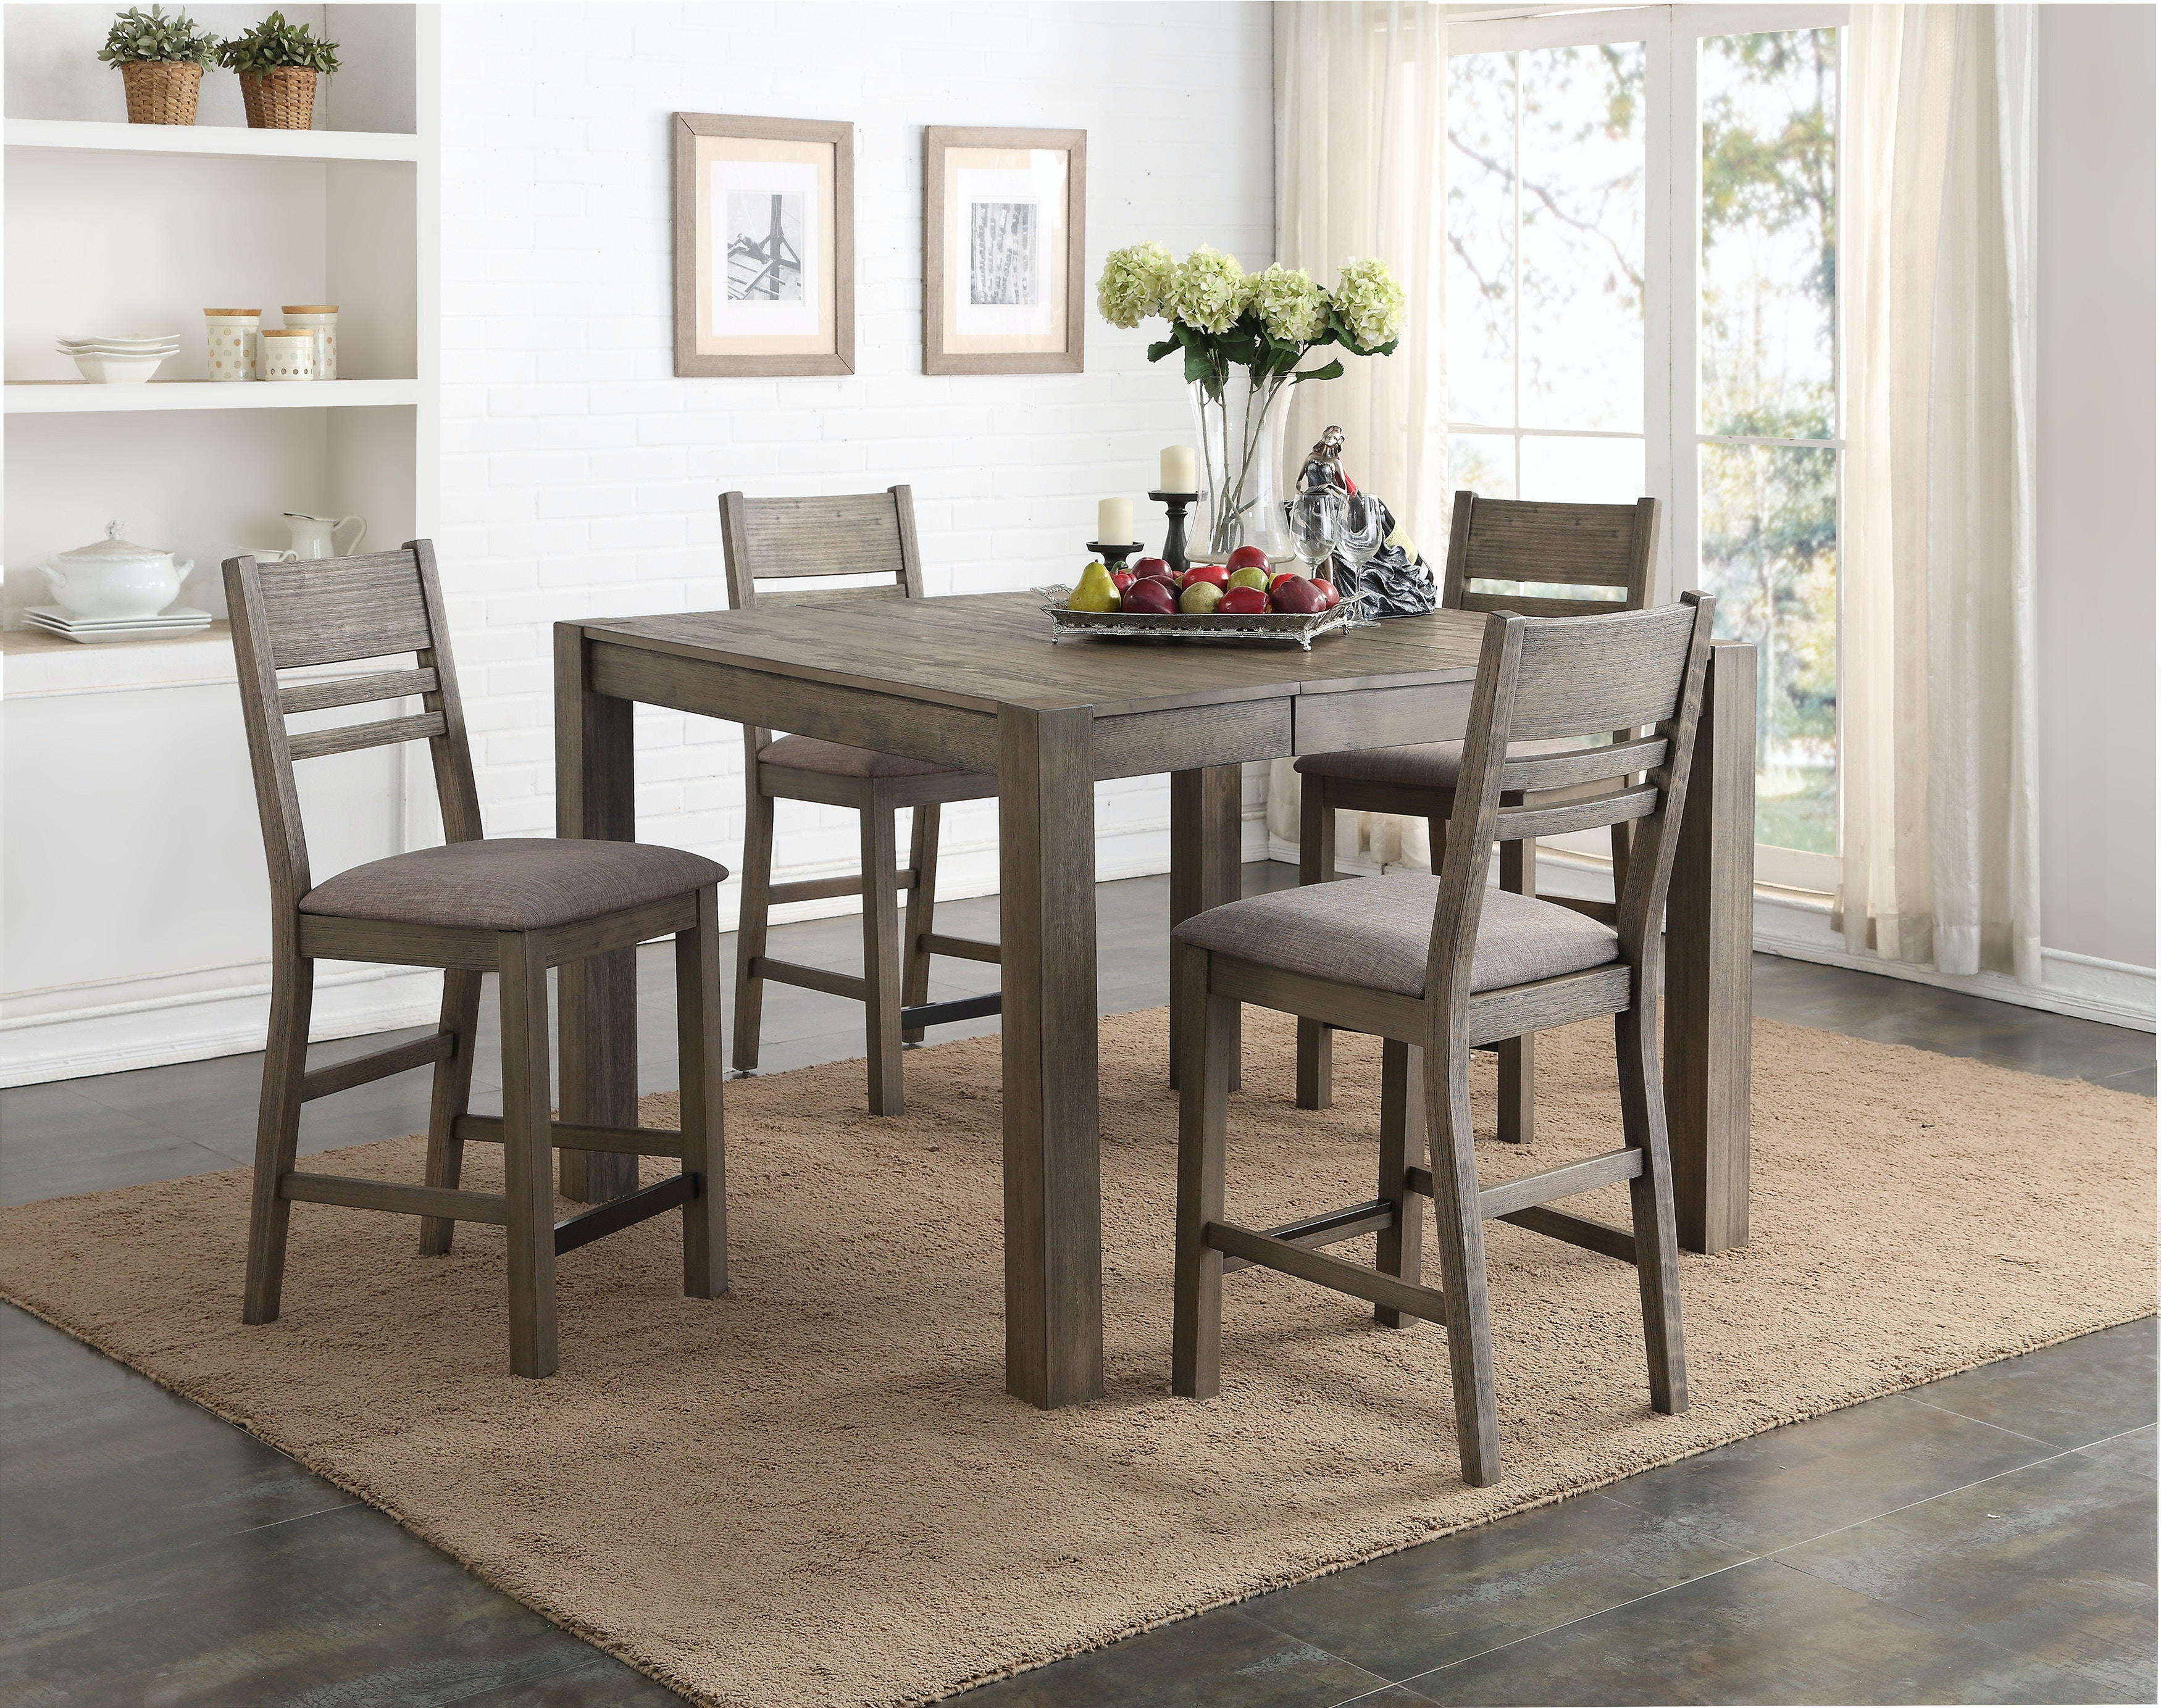 Easton Grey 5 Piece Counter Height Dining Set GP:D484